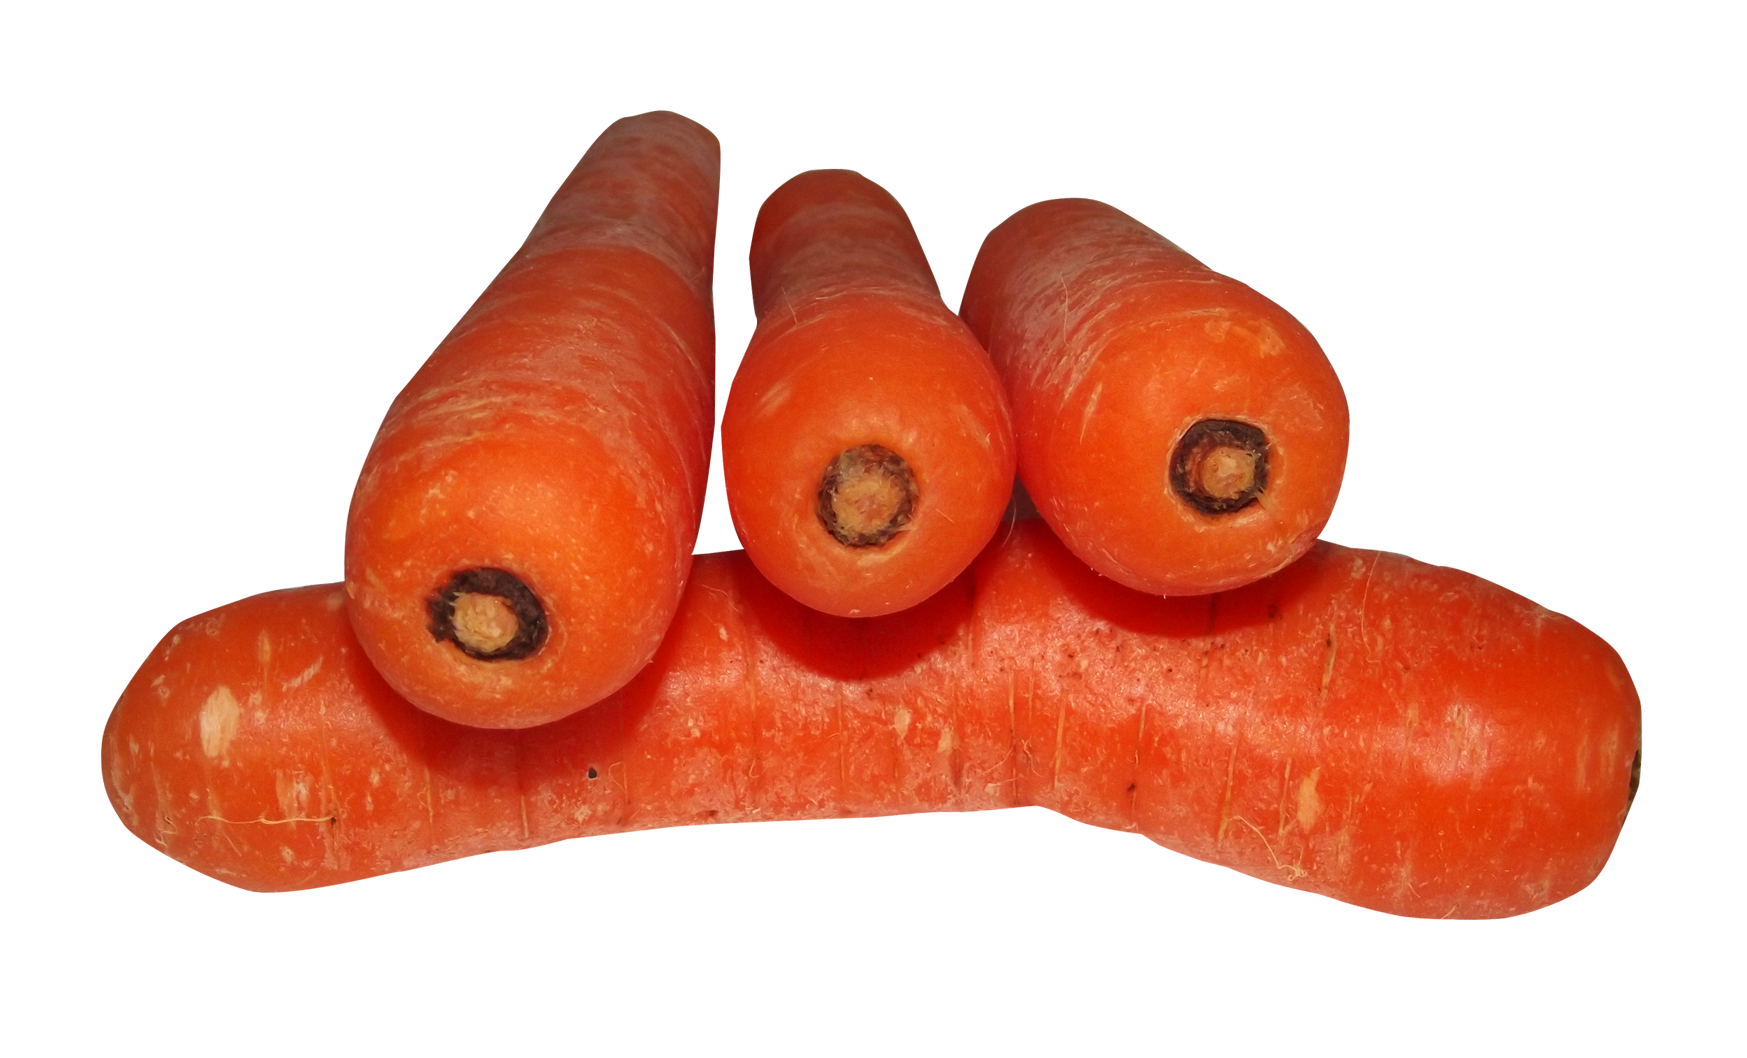 Carrot PNG - 19923